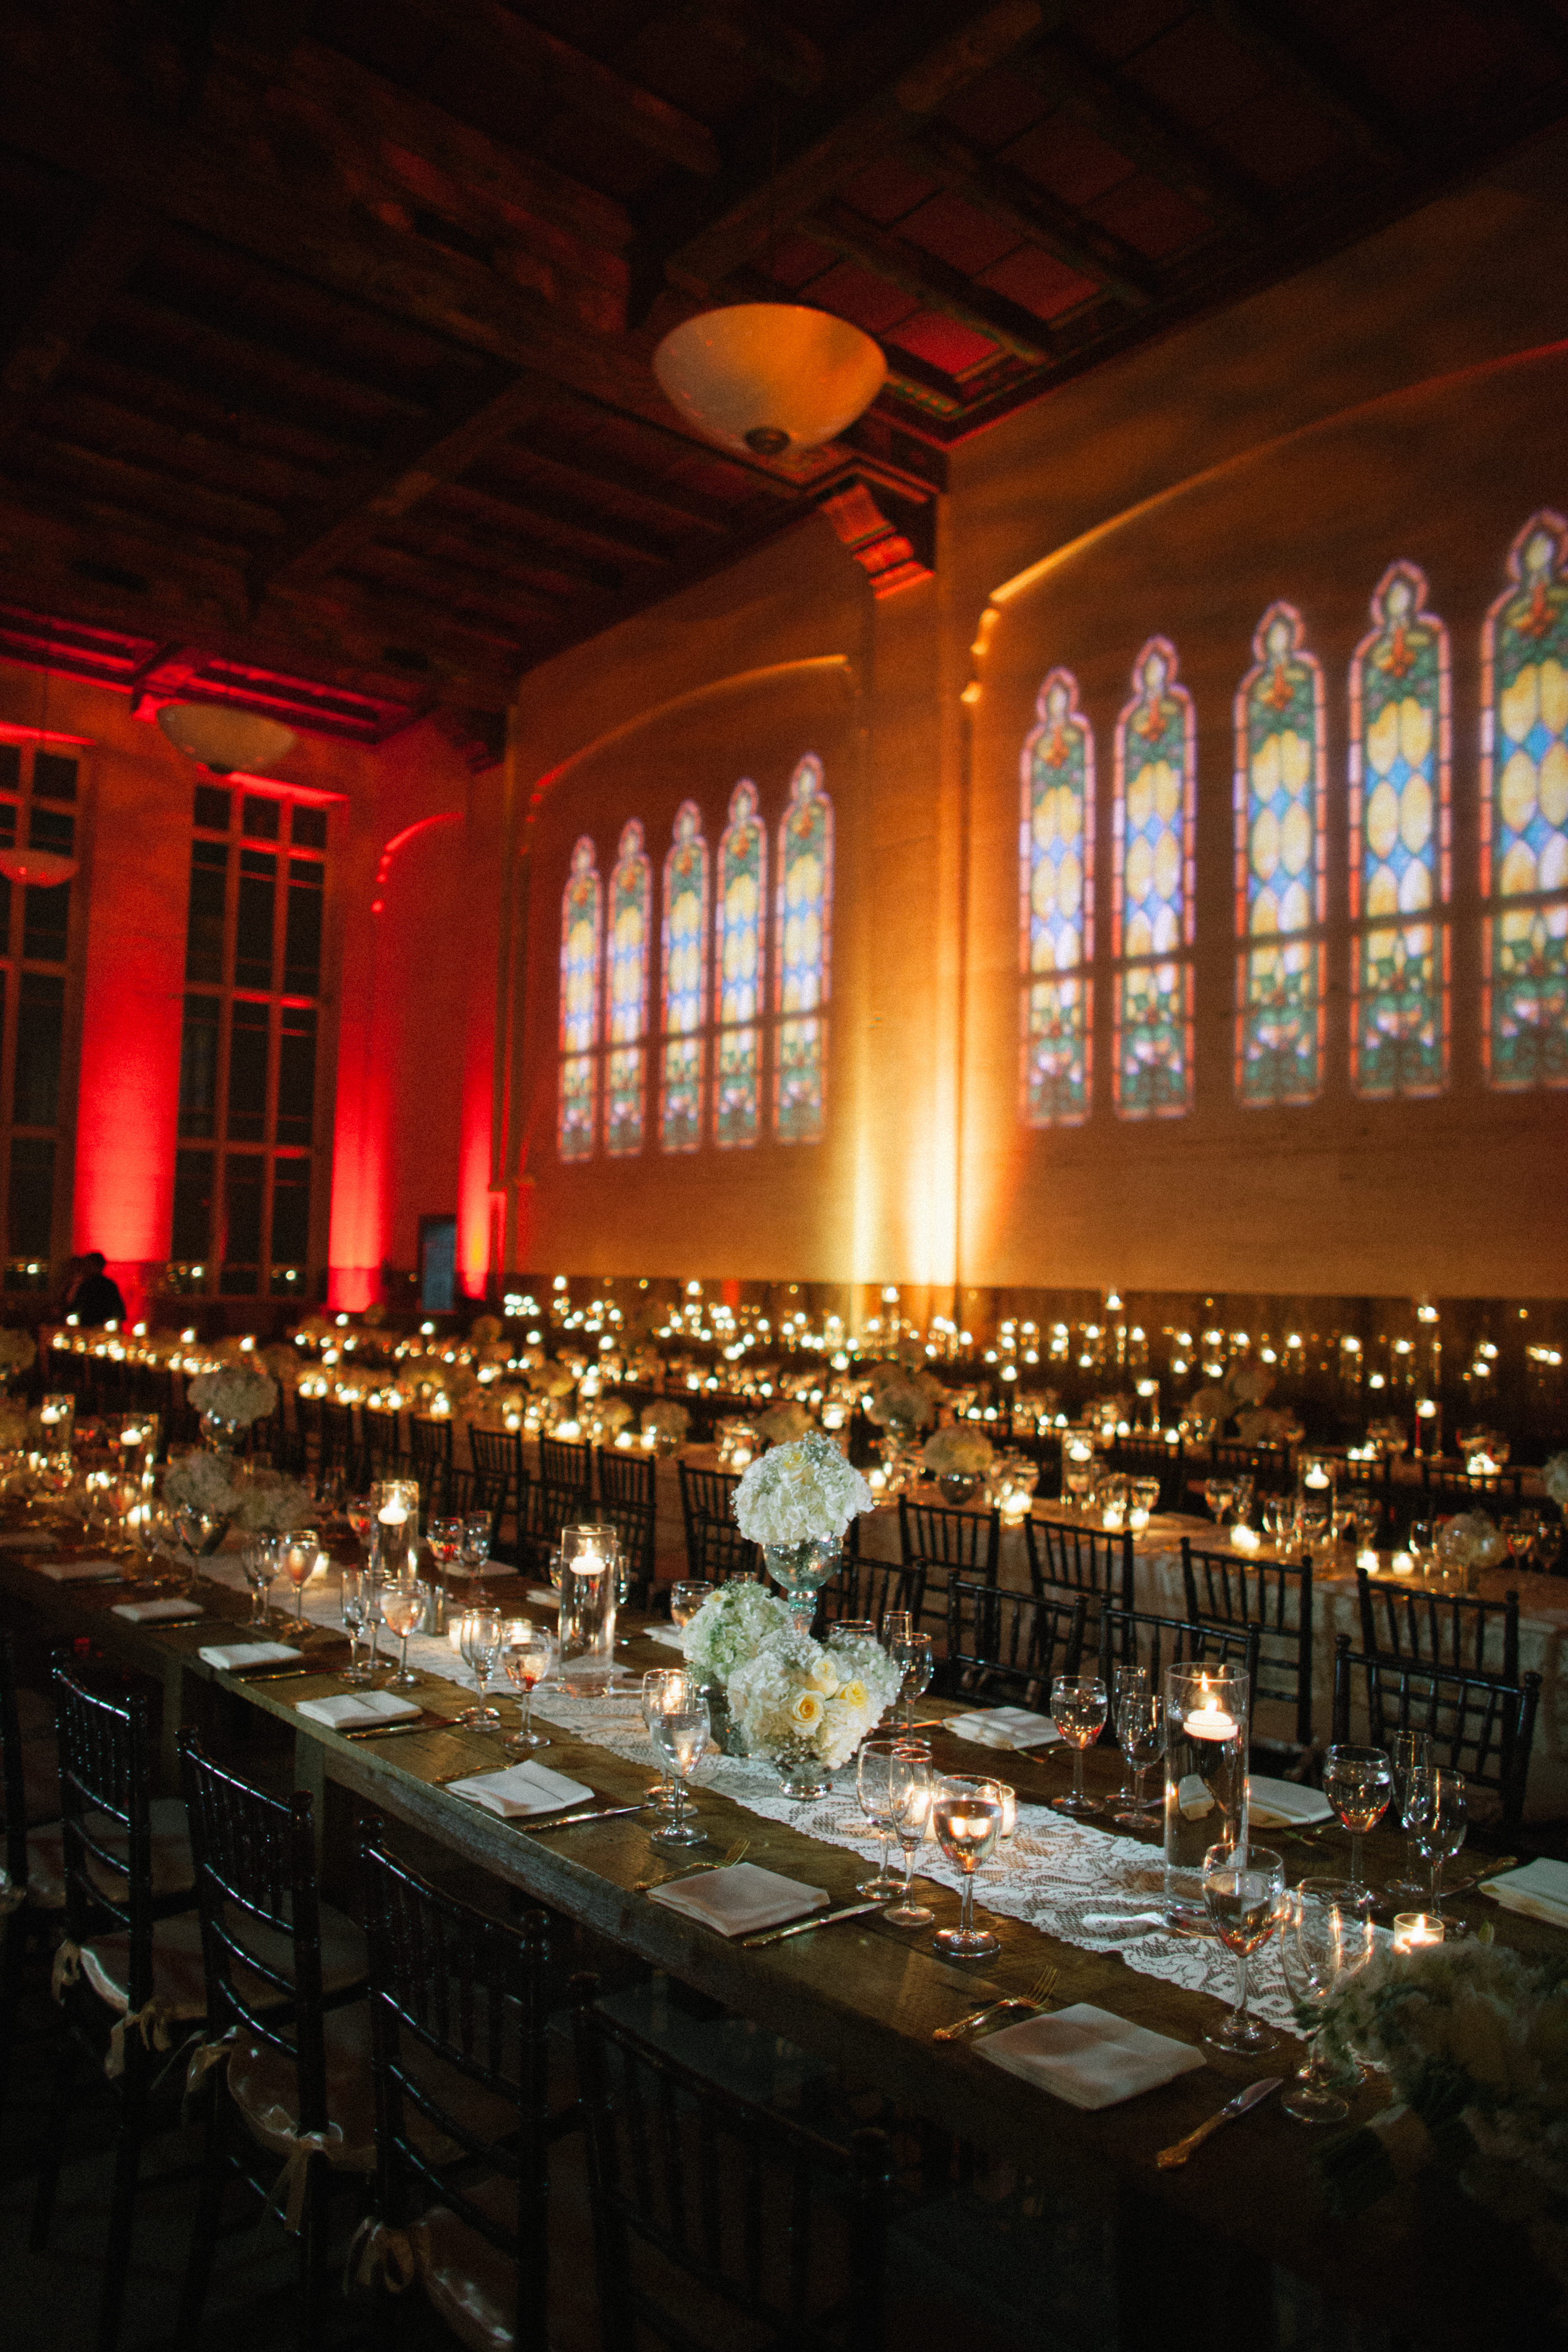 Dupont Weddings - The Historic Alfred I. Dupont Building